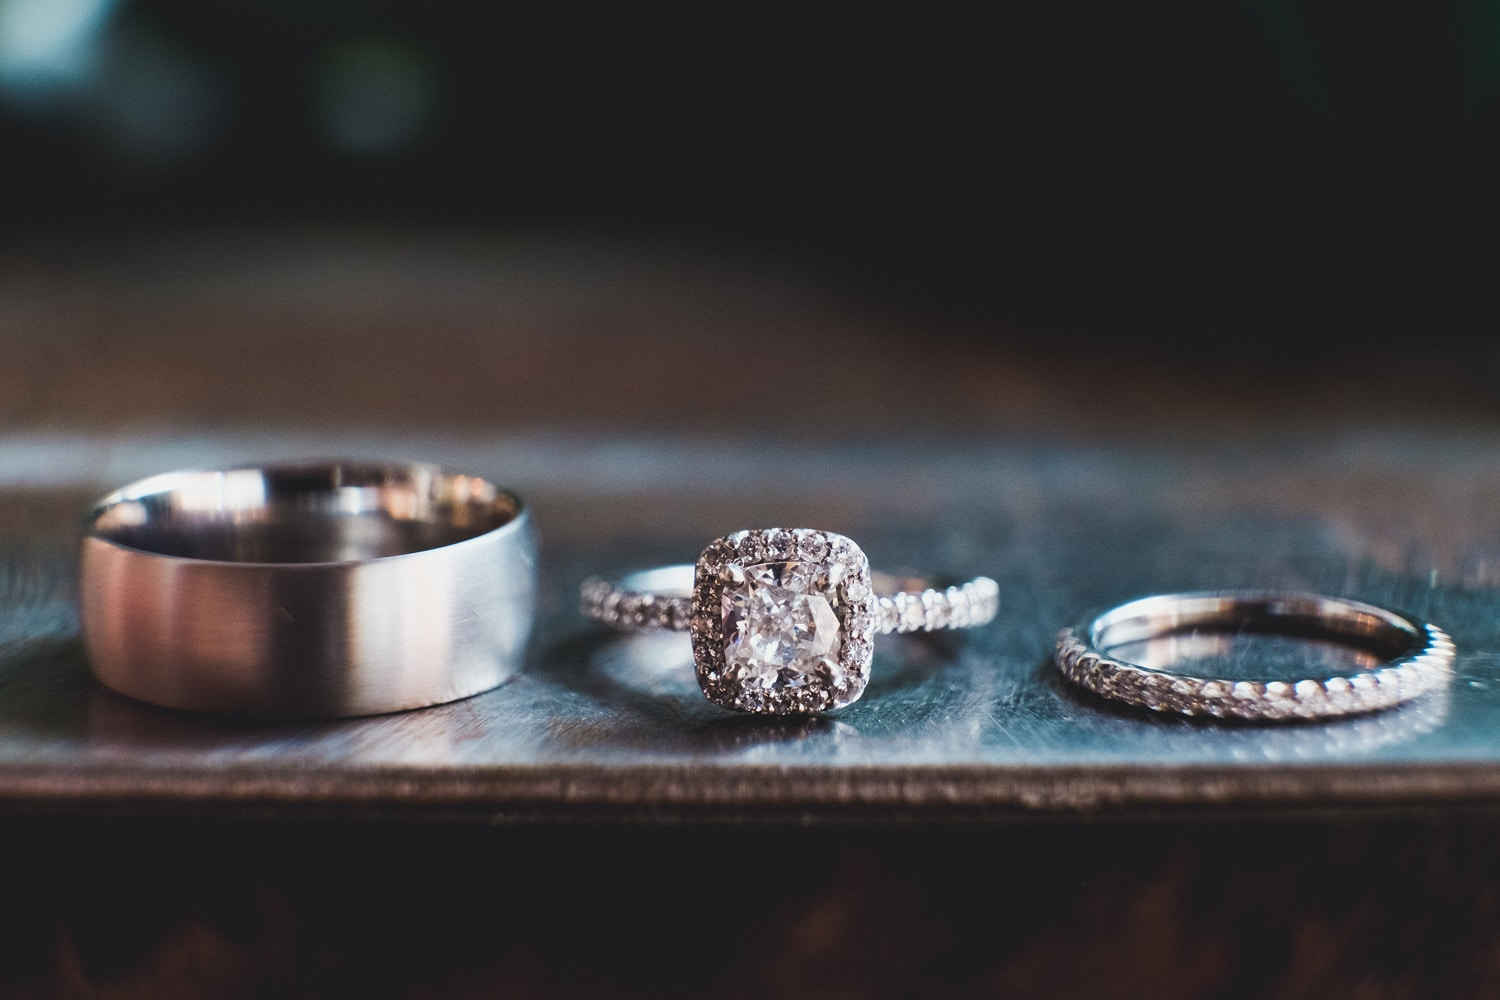 Ritani cushion cut halo engagement ring and wedding ring // Photo by Leia Smethurst Photography